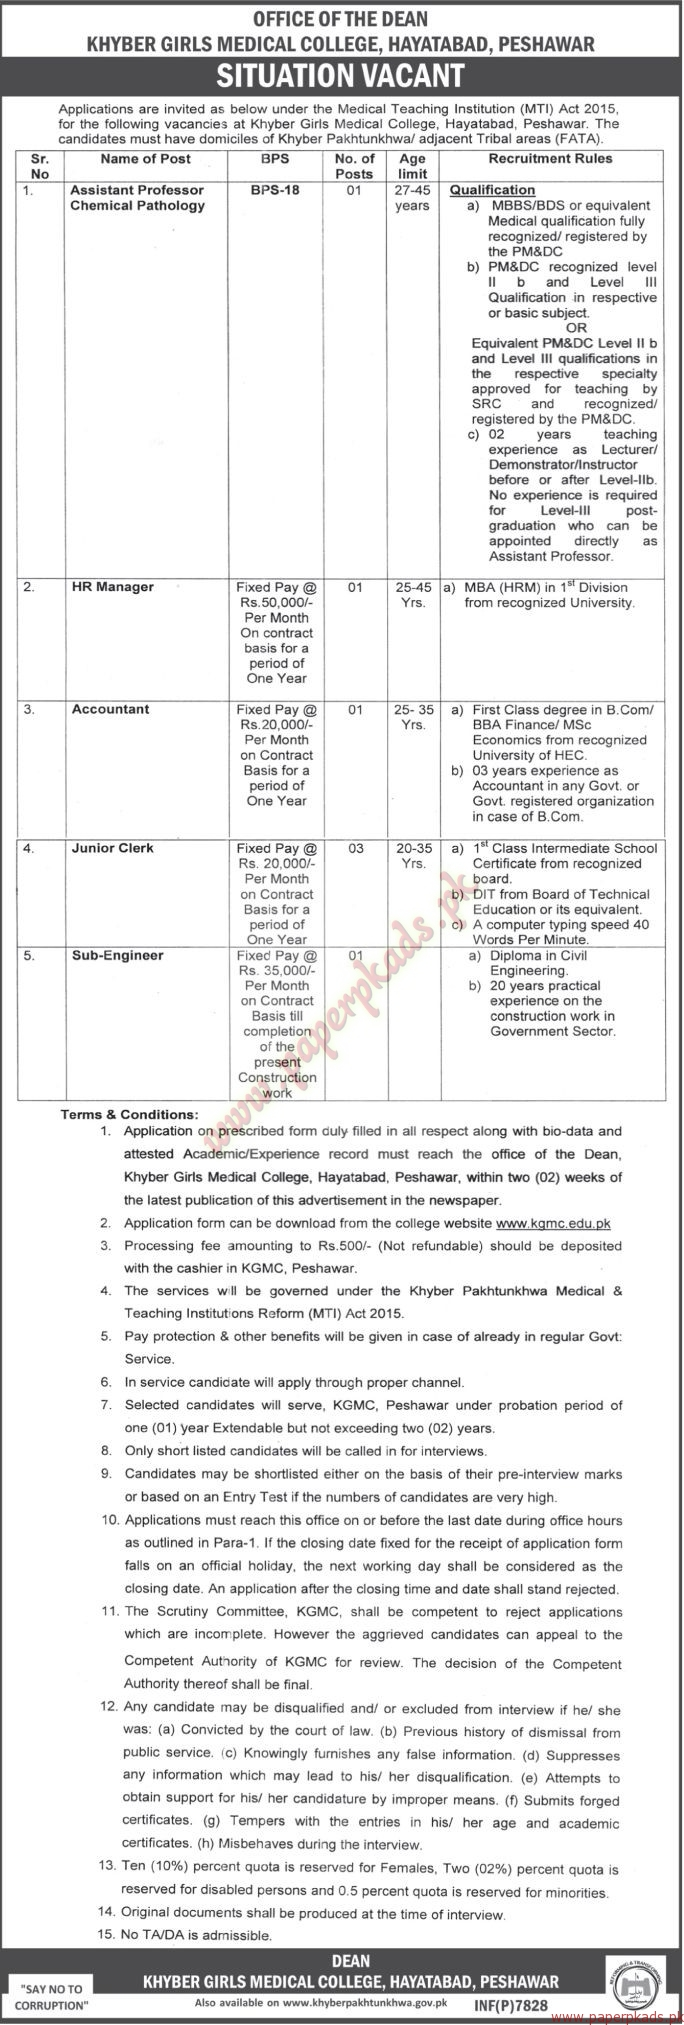 Khyber Girls Medical College Jobs - The News Jobs ads 31 December 2016